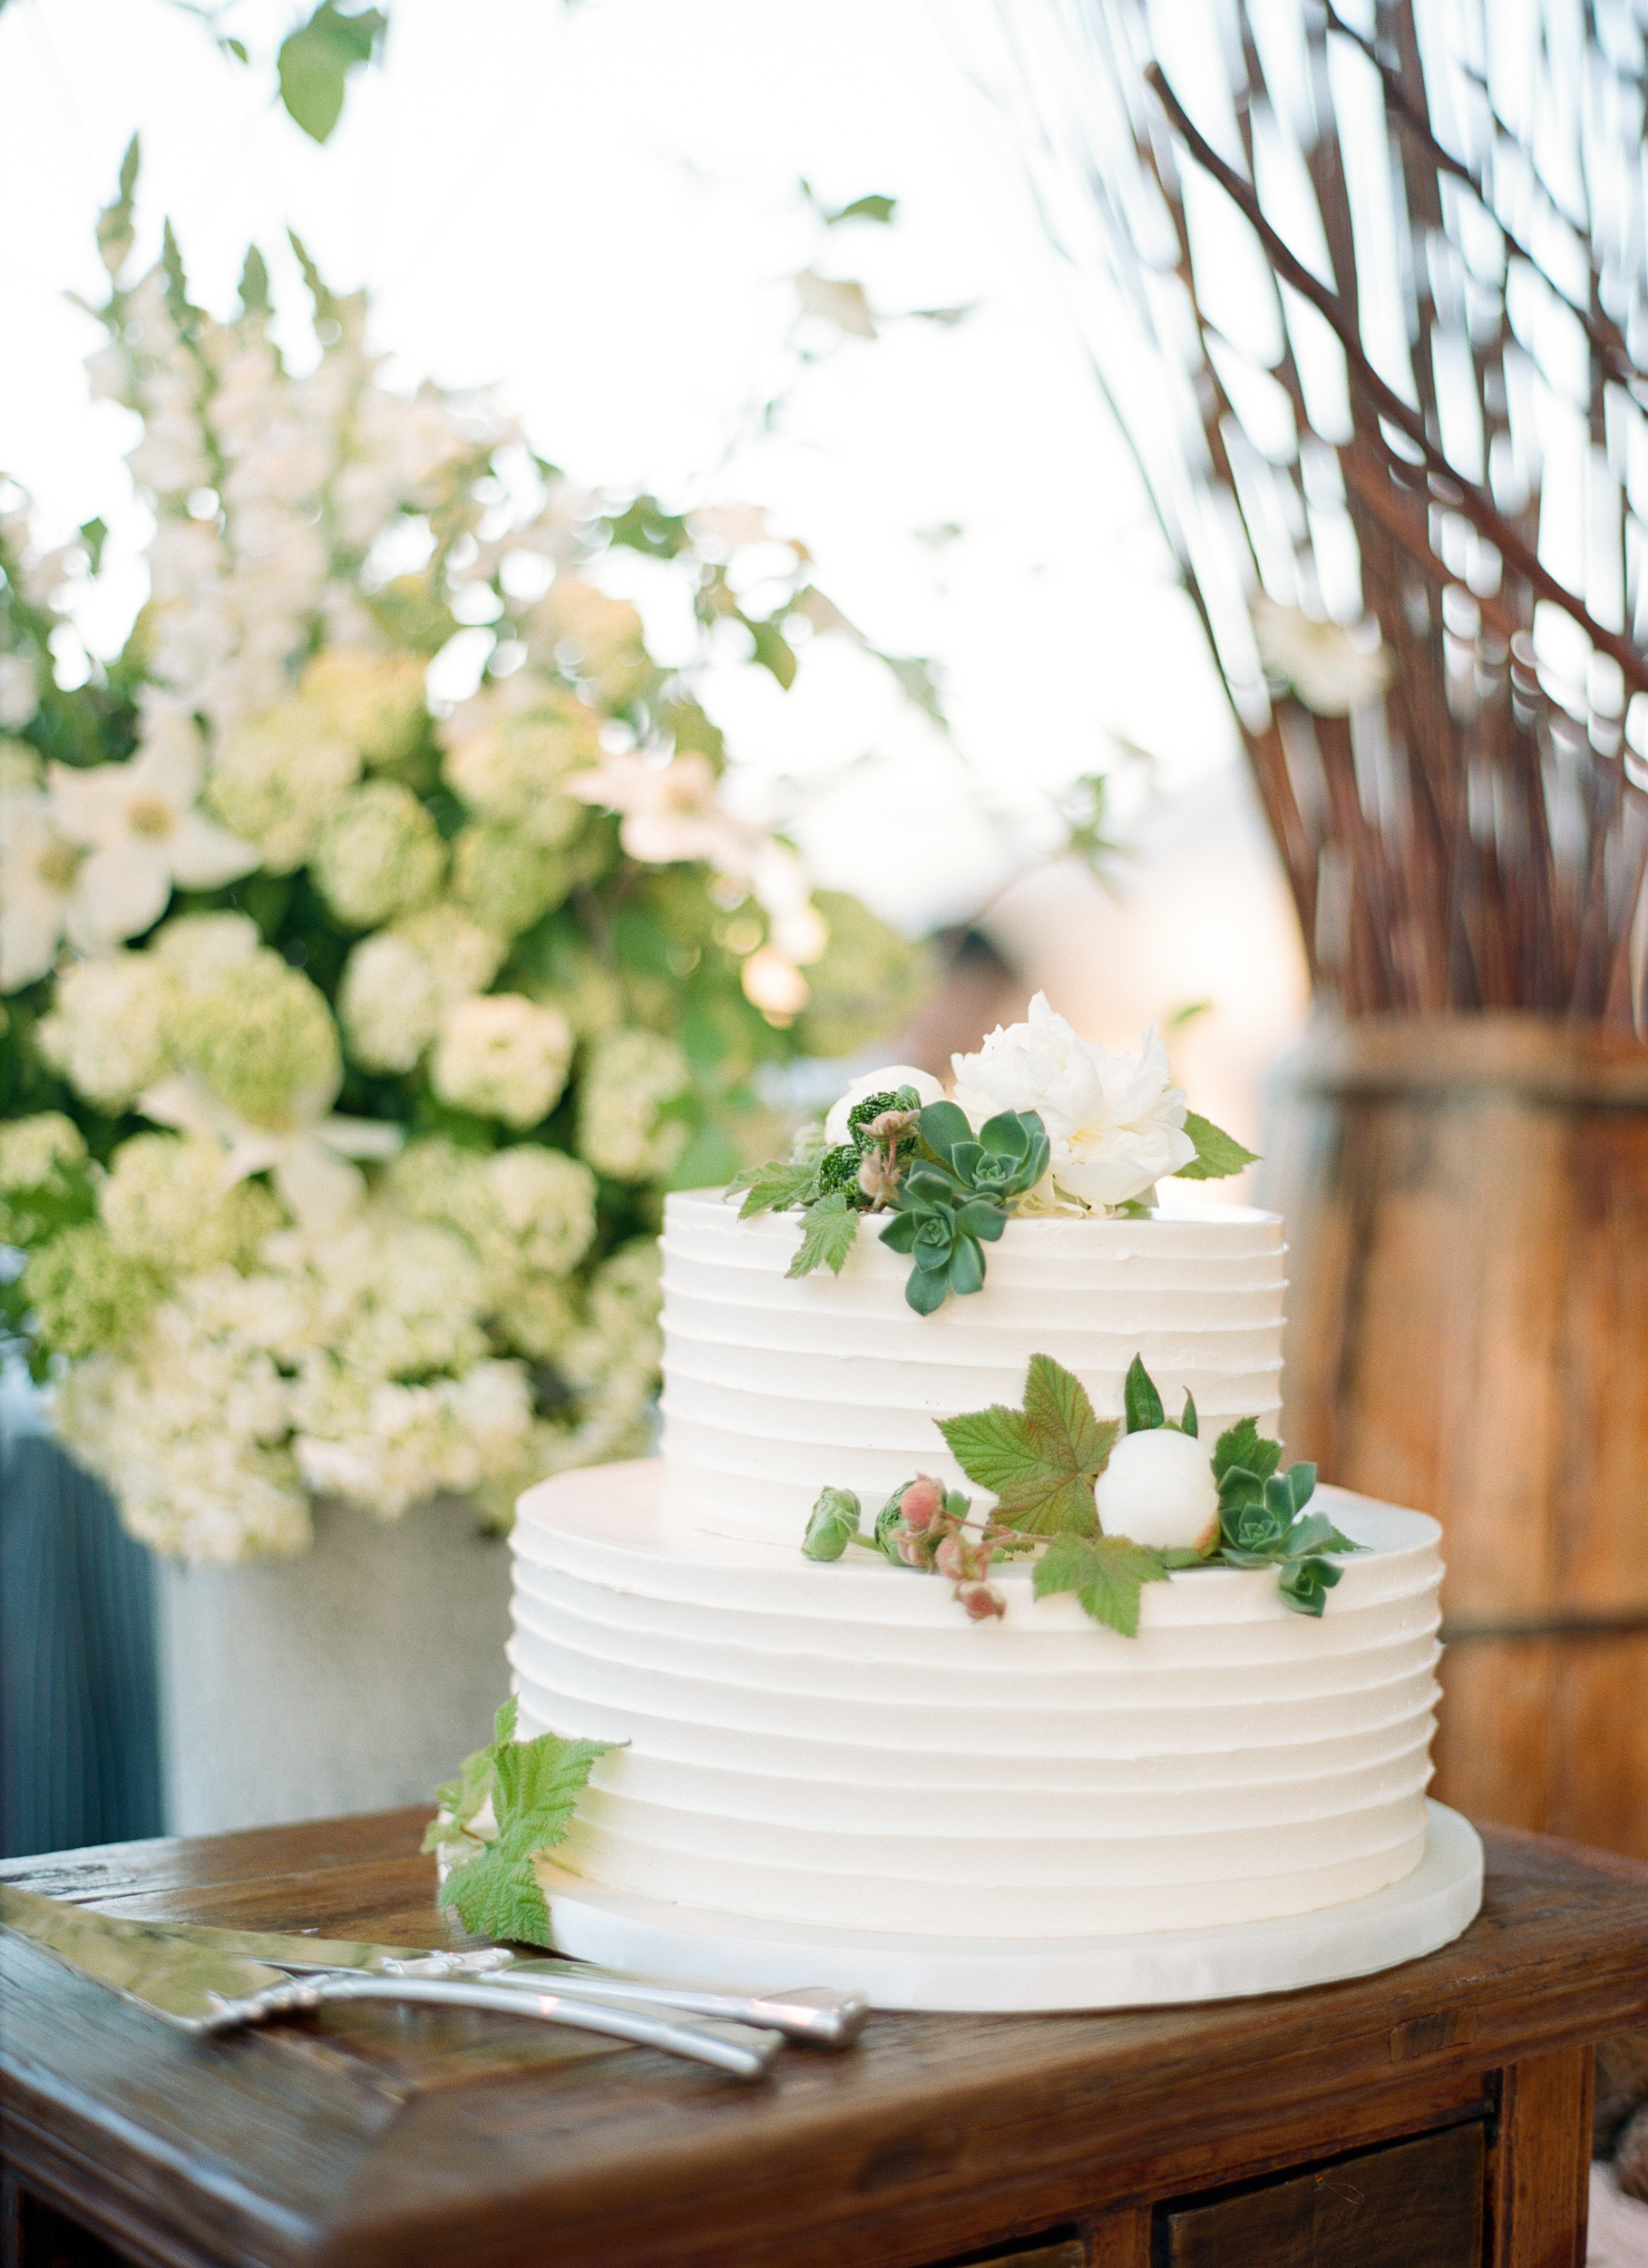 A simple two-tiered cake adorned with peonies and succulents; photo by Sylvie Gil